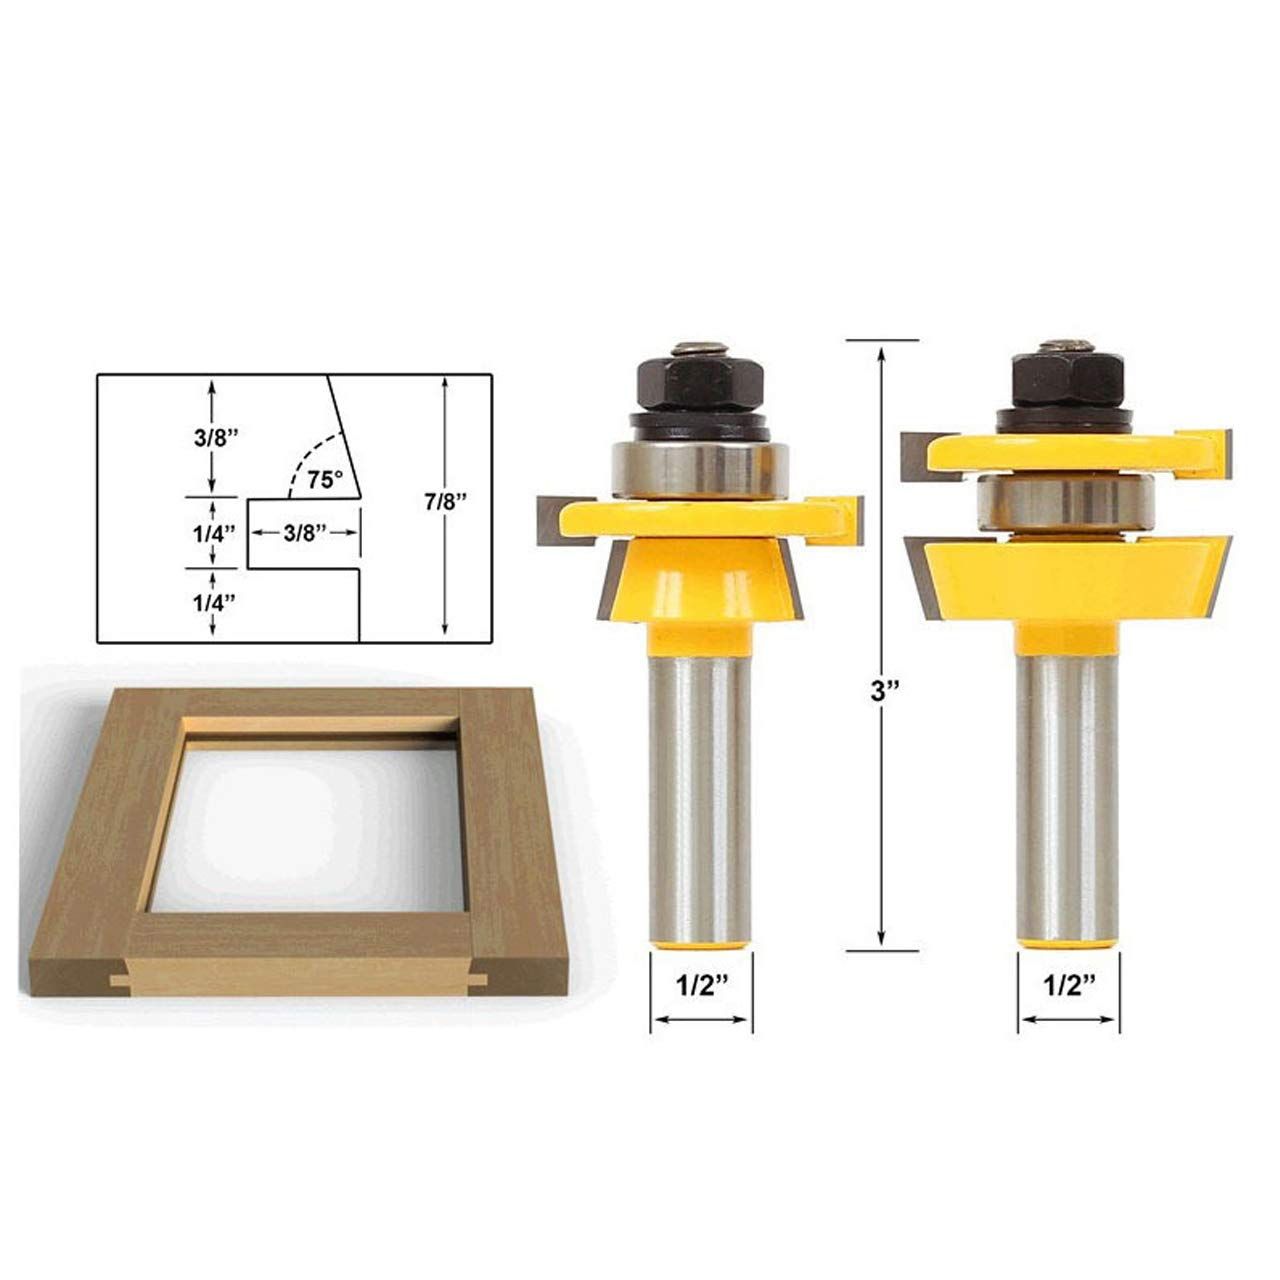 HOEN Rail and Stile Router Bits with Matched 2 Bit Round-Over 1/2-Inch Shank